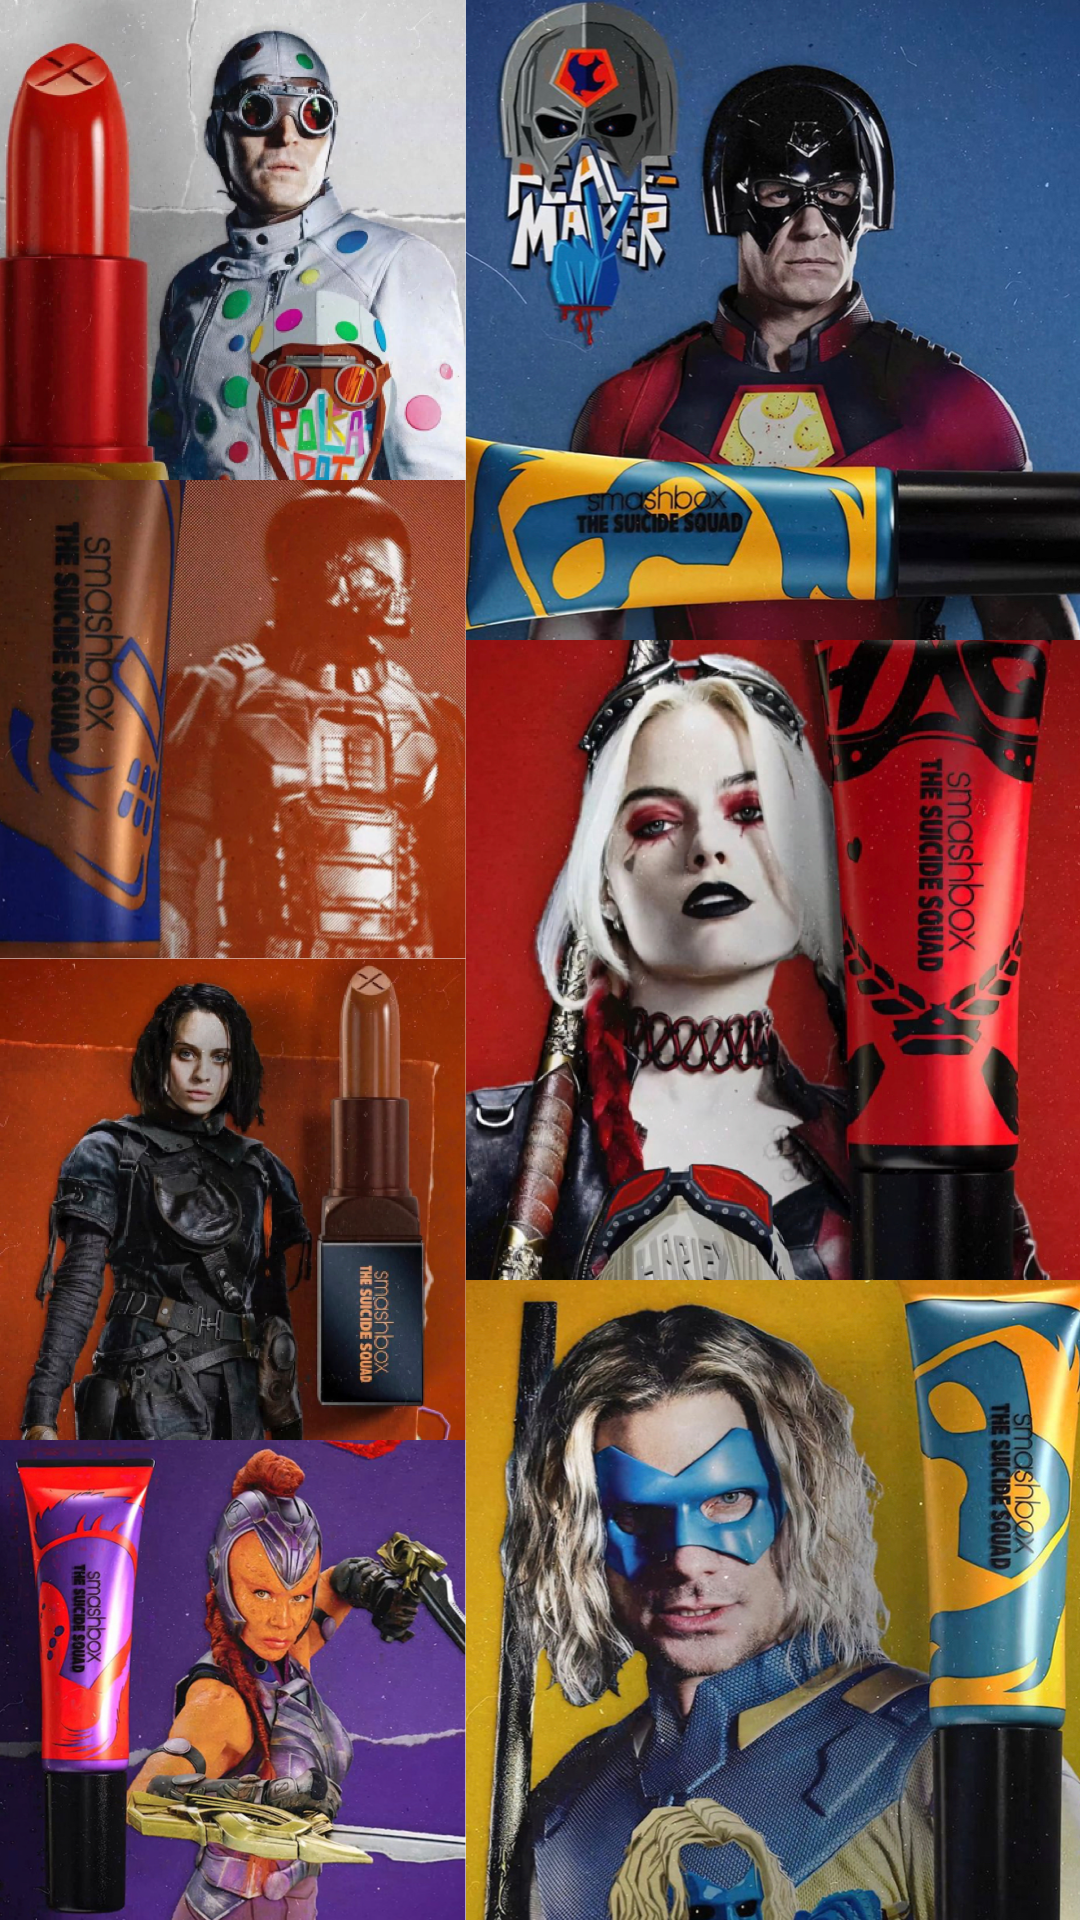 Smashbox x The Suicide Squad Collaboration Reveal!